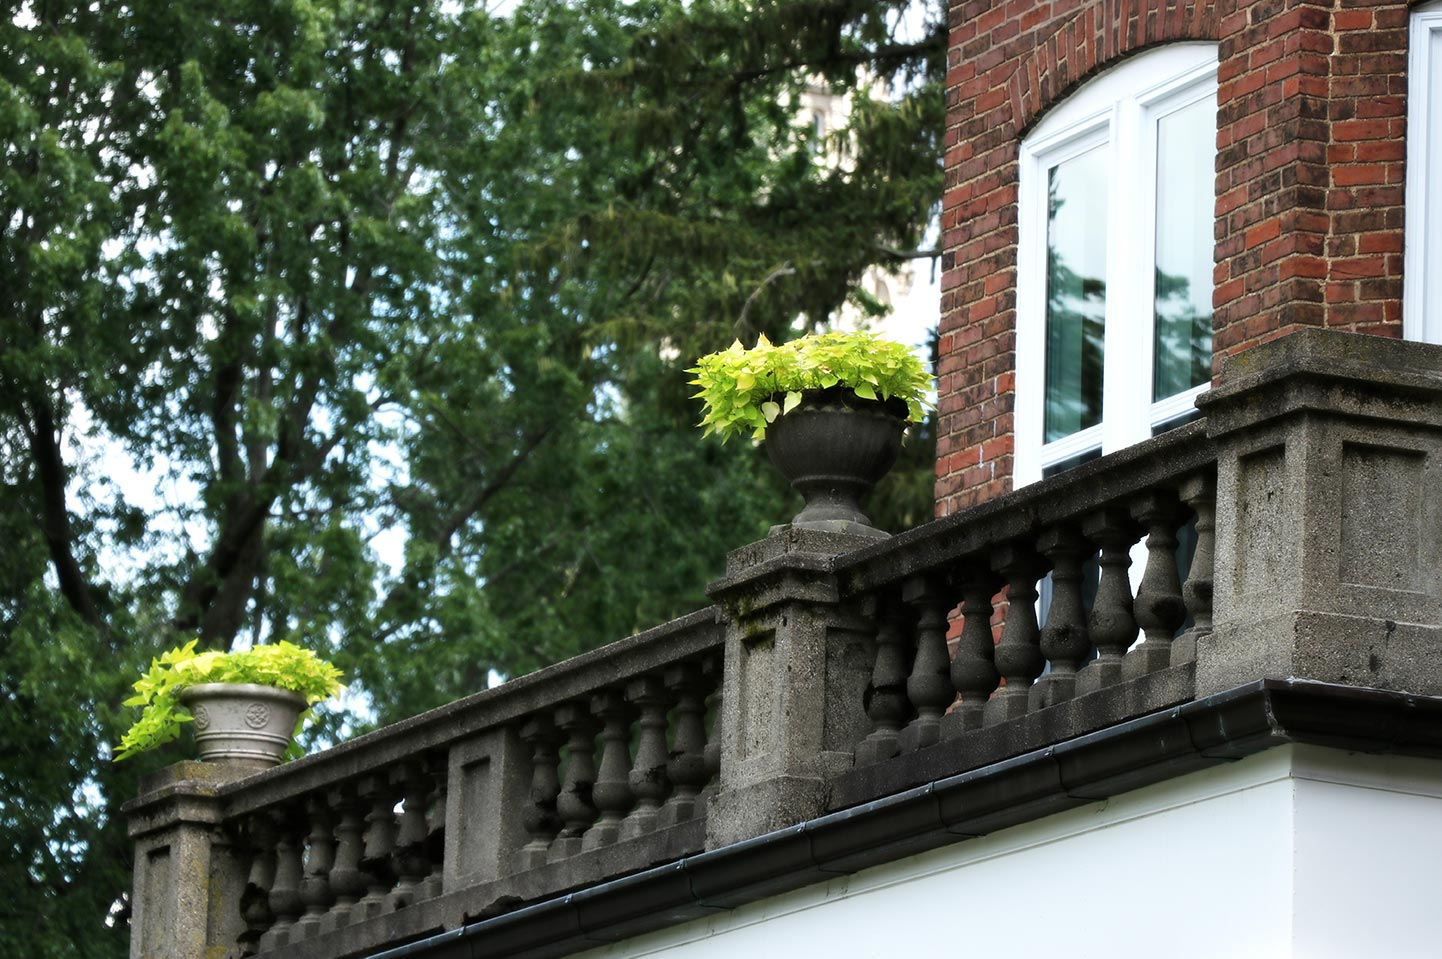 Detailed view of the upper porch spindles